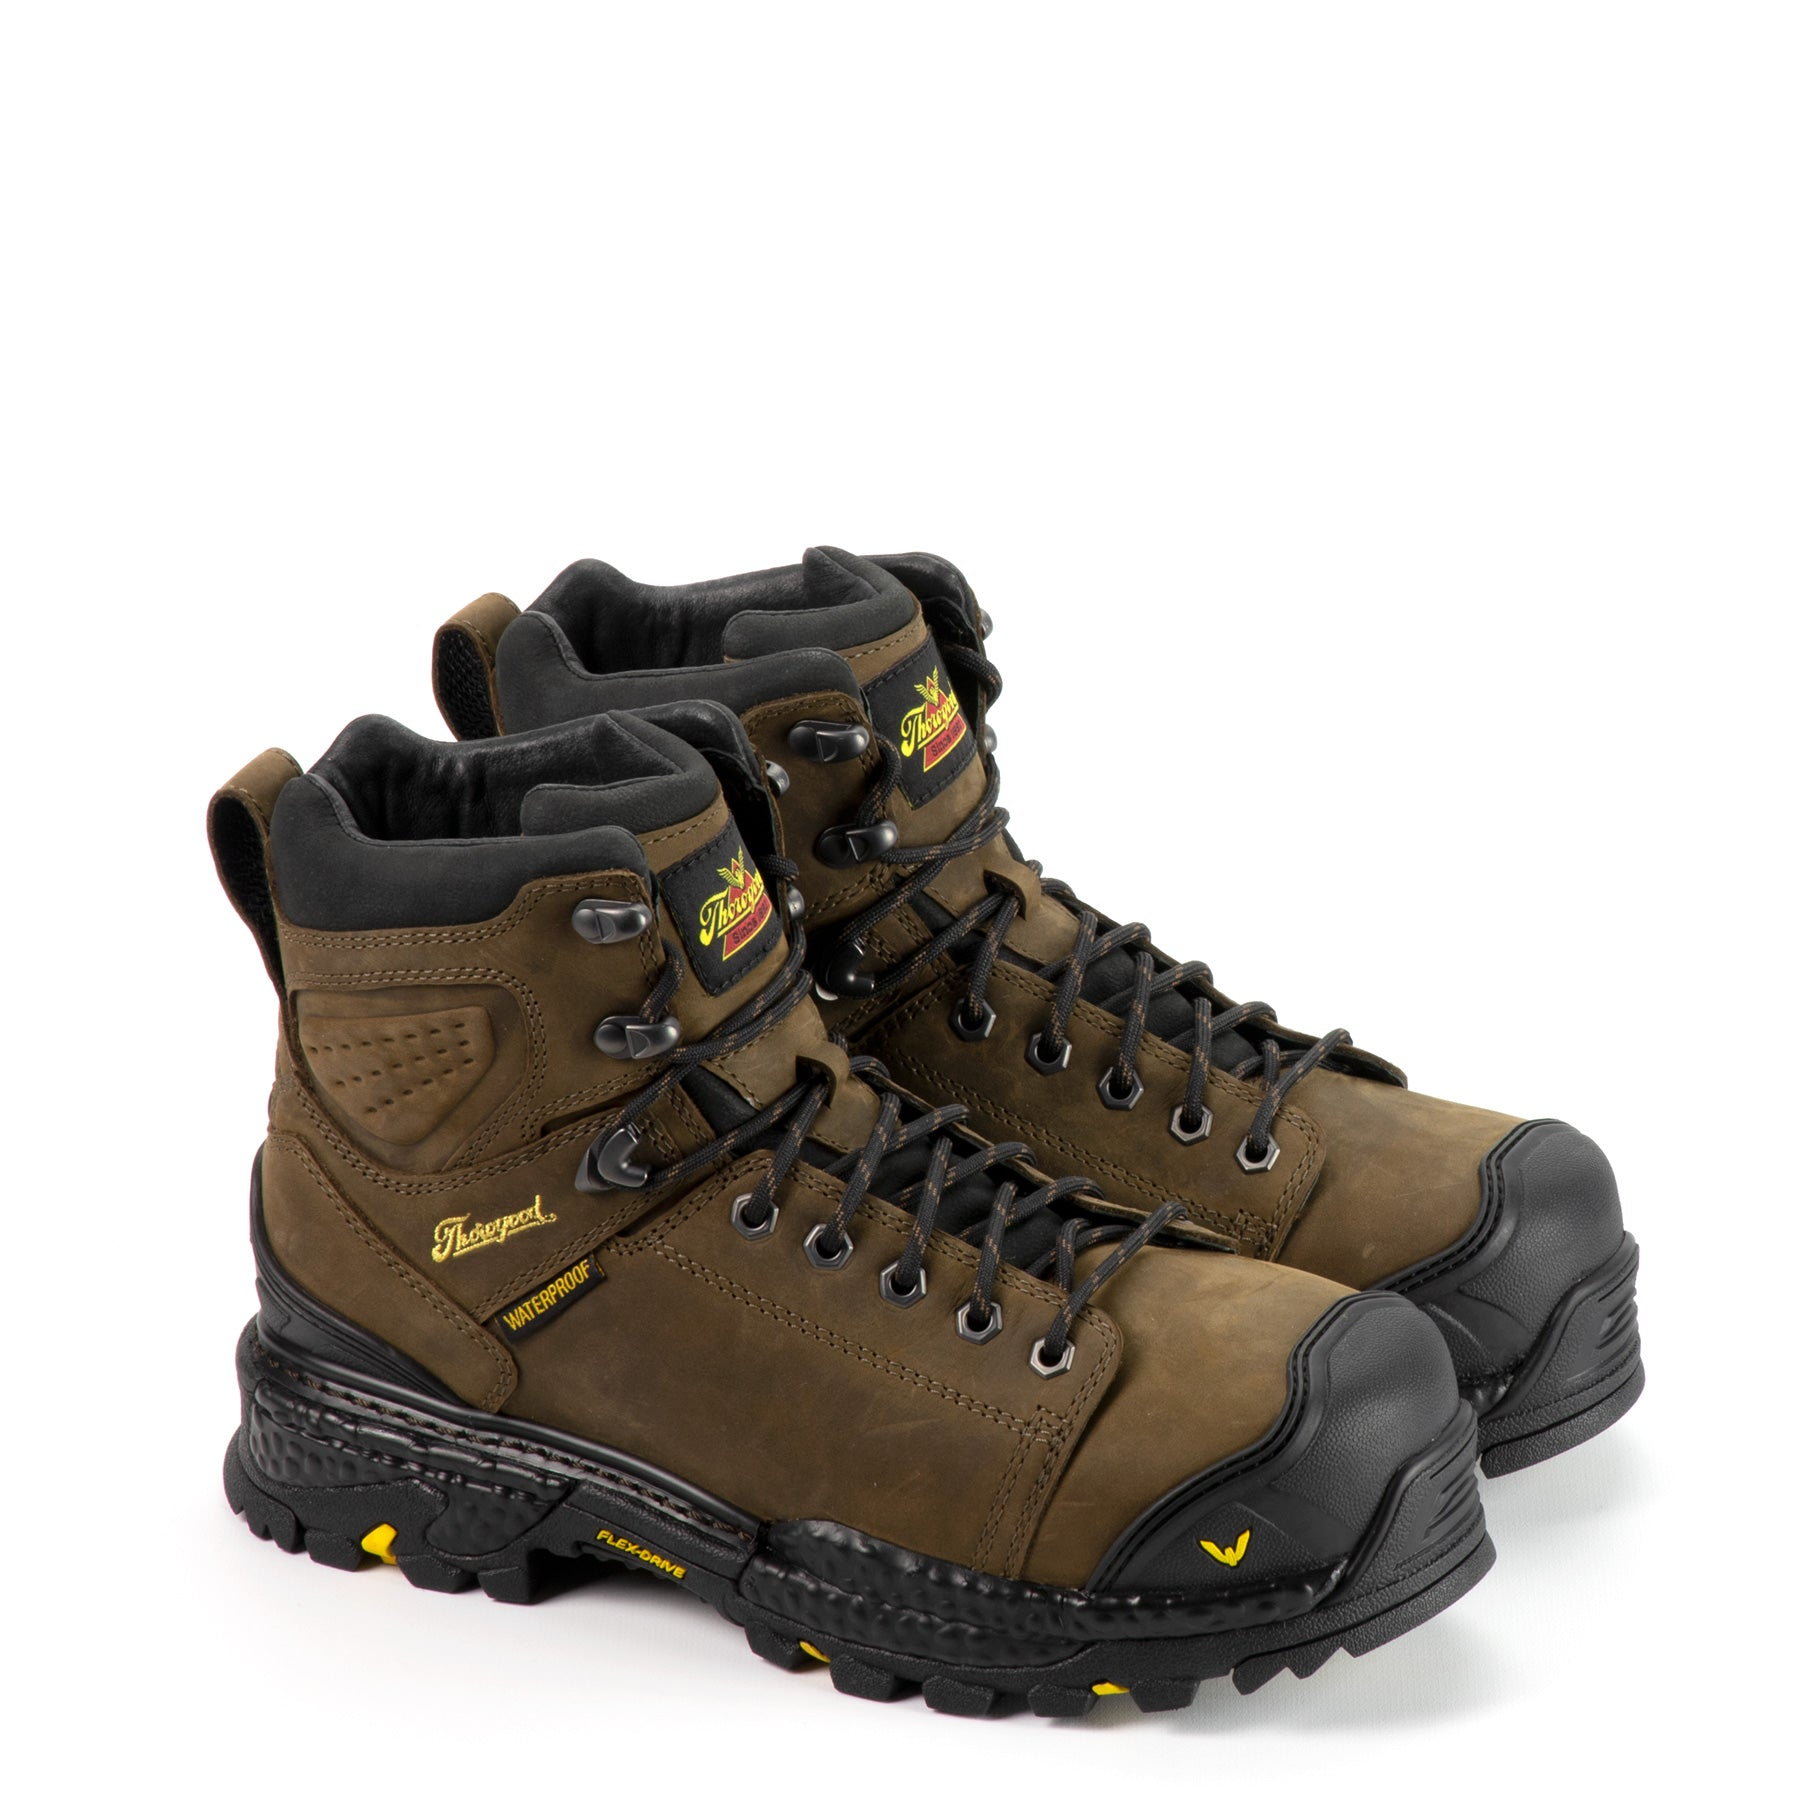 "Thorogood Men's Infinity FD Series 6"" Waterproof Composite Work Boot in Studhorse from the side"